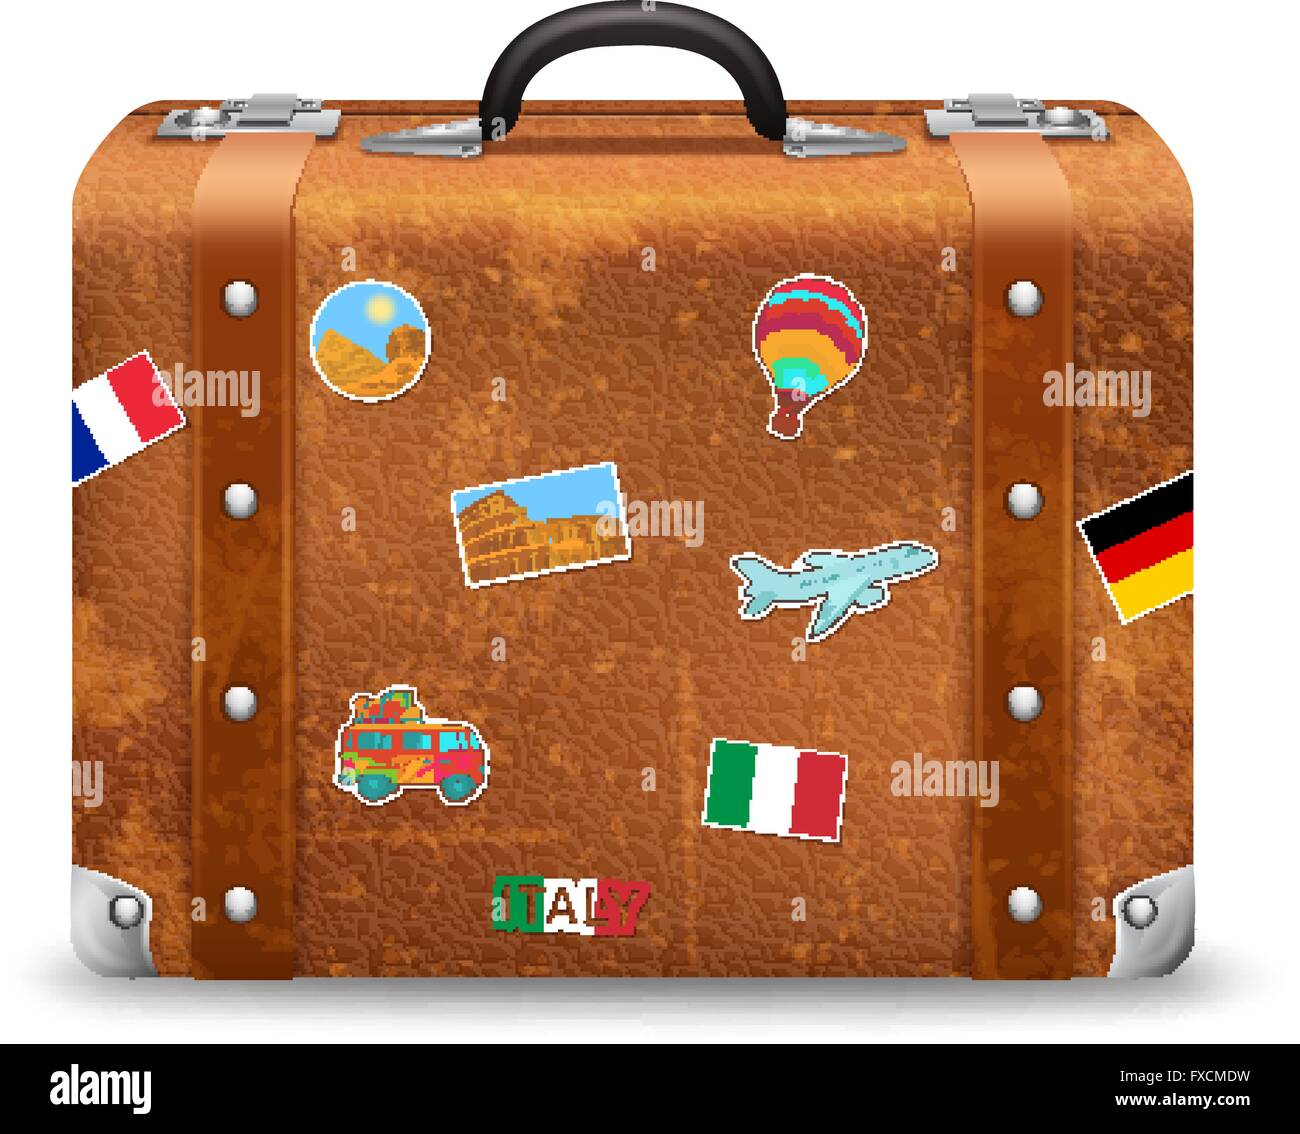 old suitcase with travel stickers stock vector art illustration